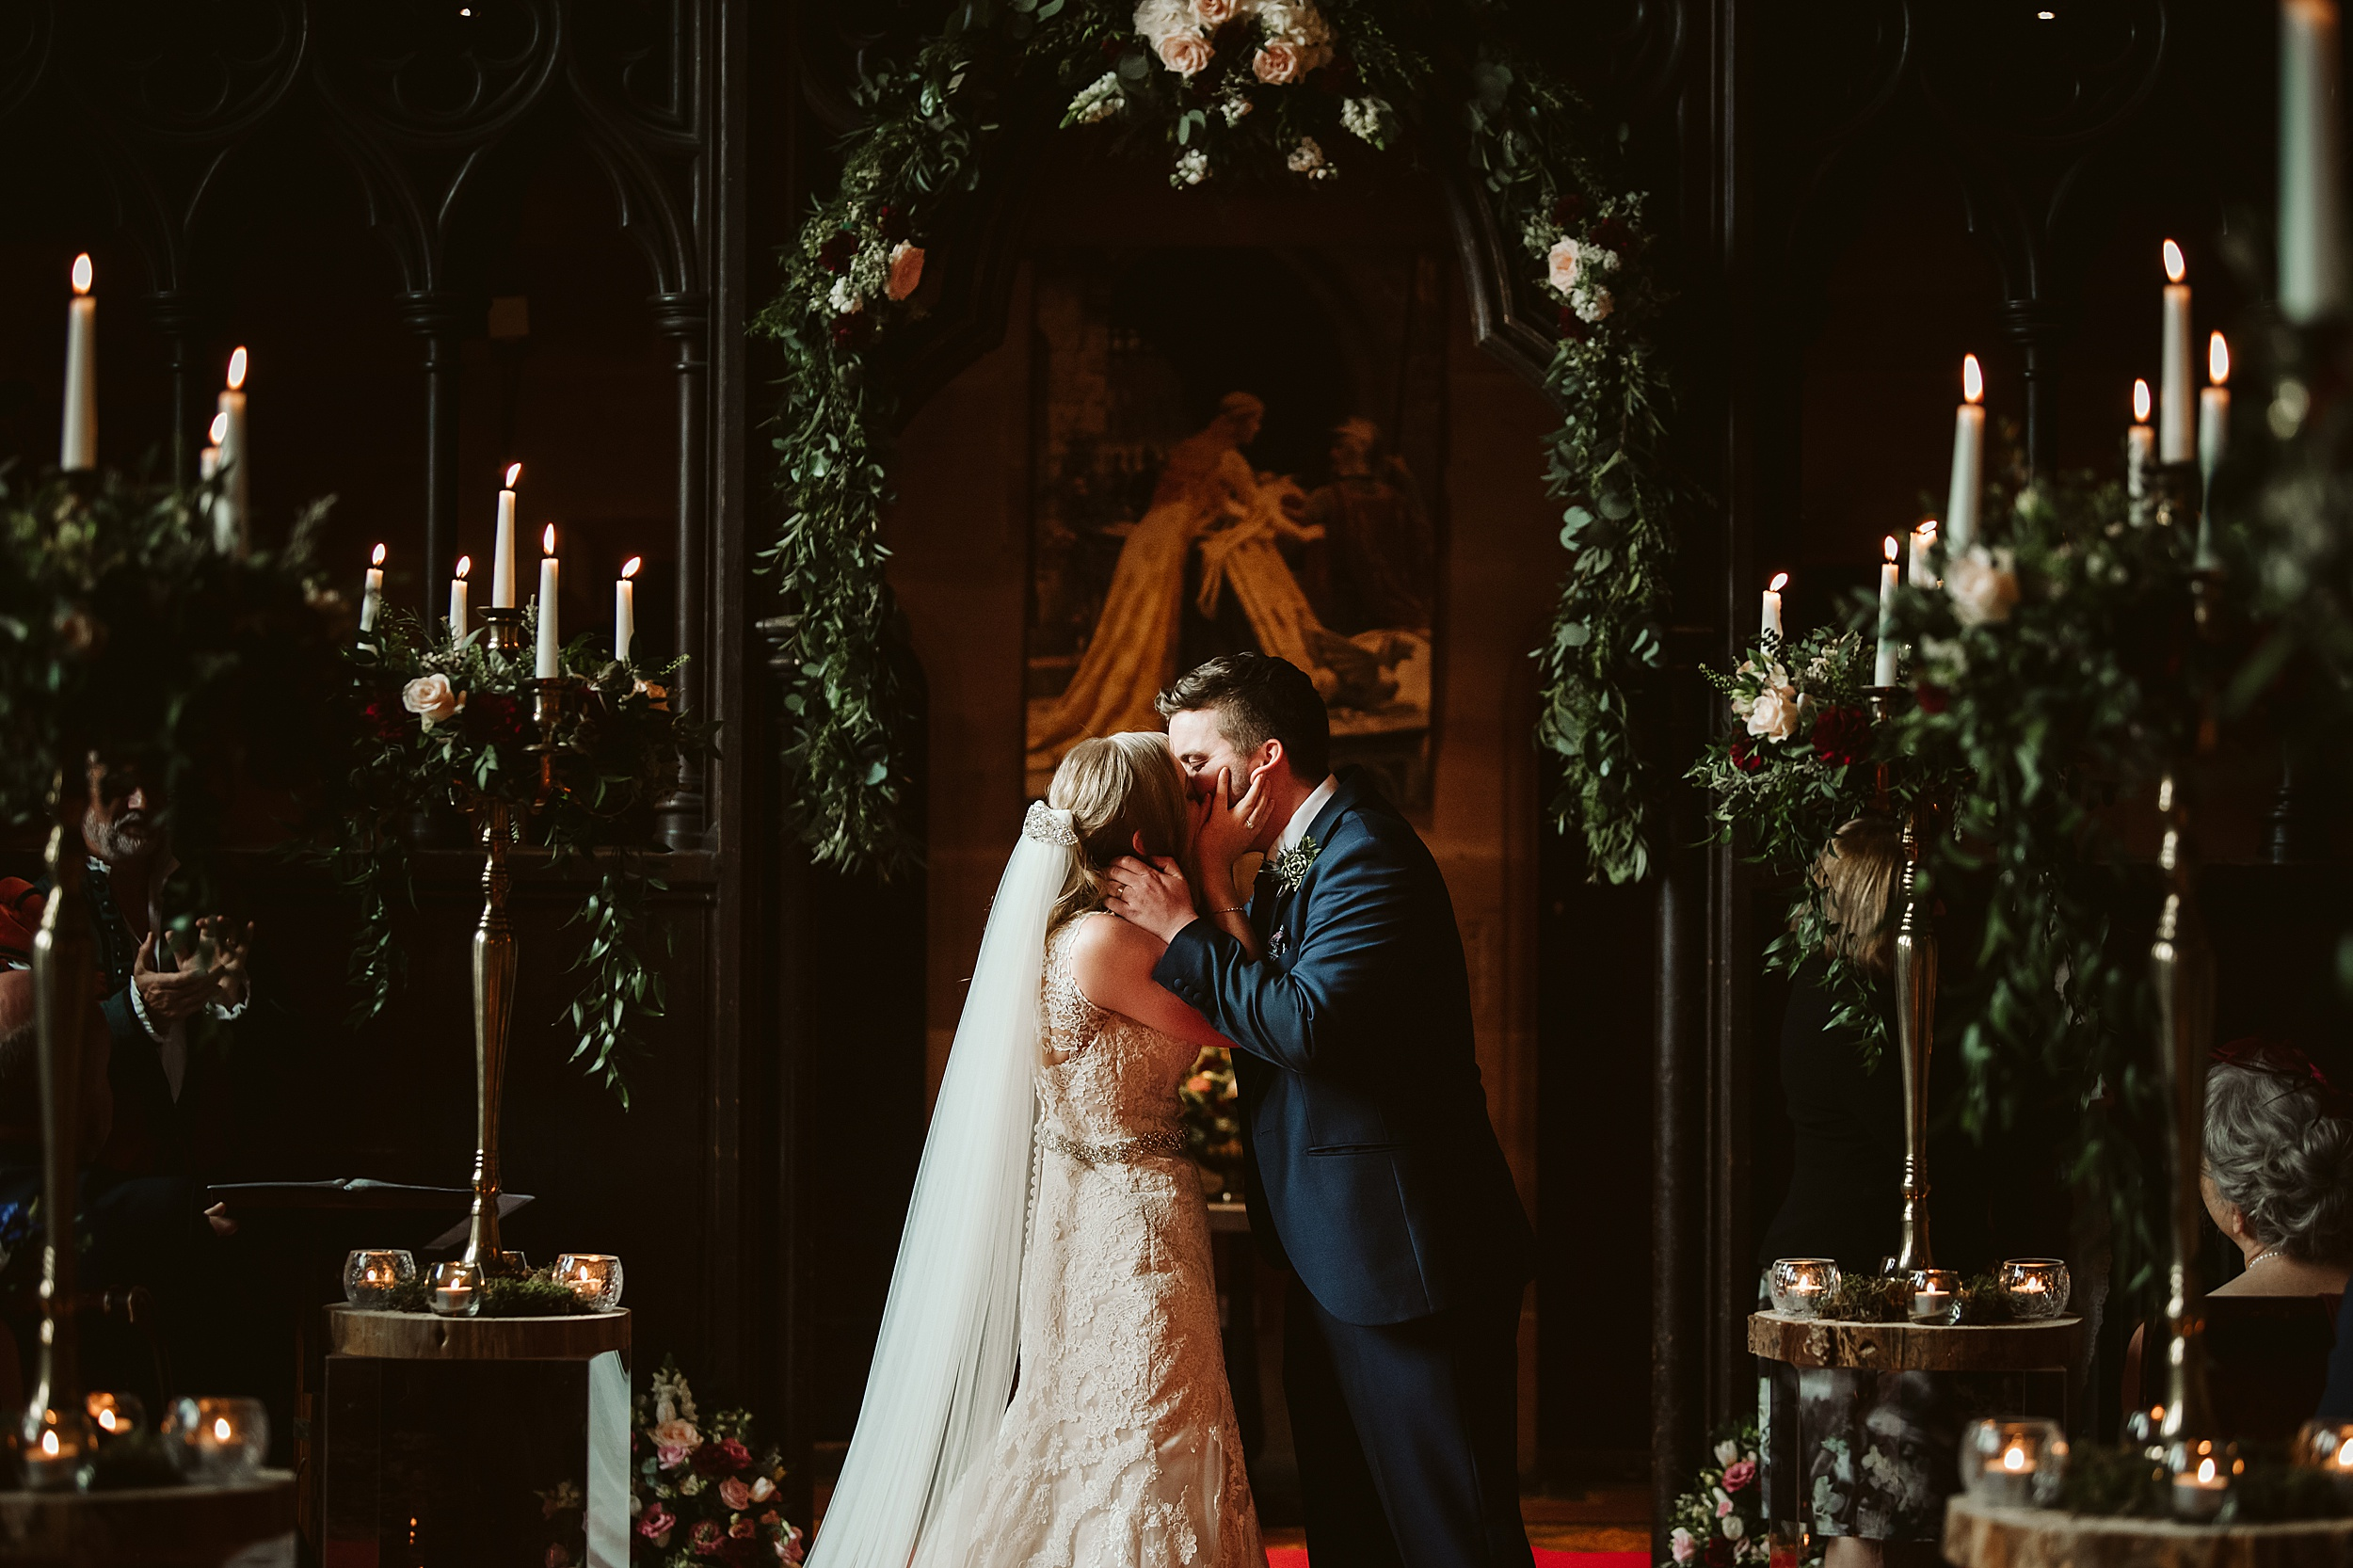 Peckforton_Castle_Cheshire_Toronto_Wedding_Photographer_UK_Destination_Wedding_0044.jpg